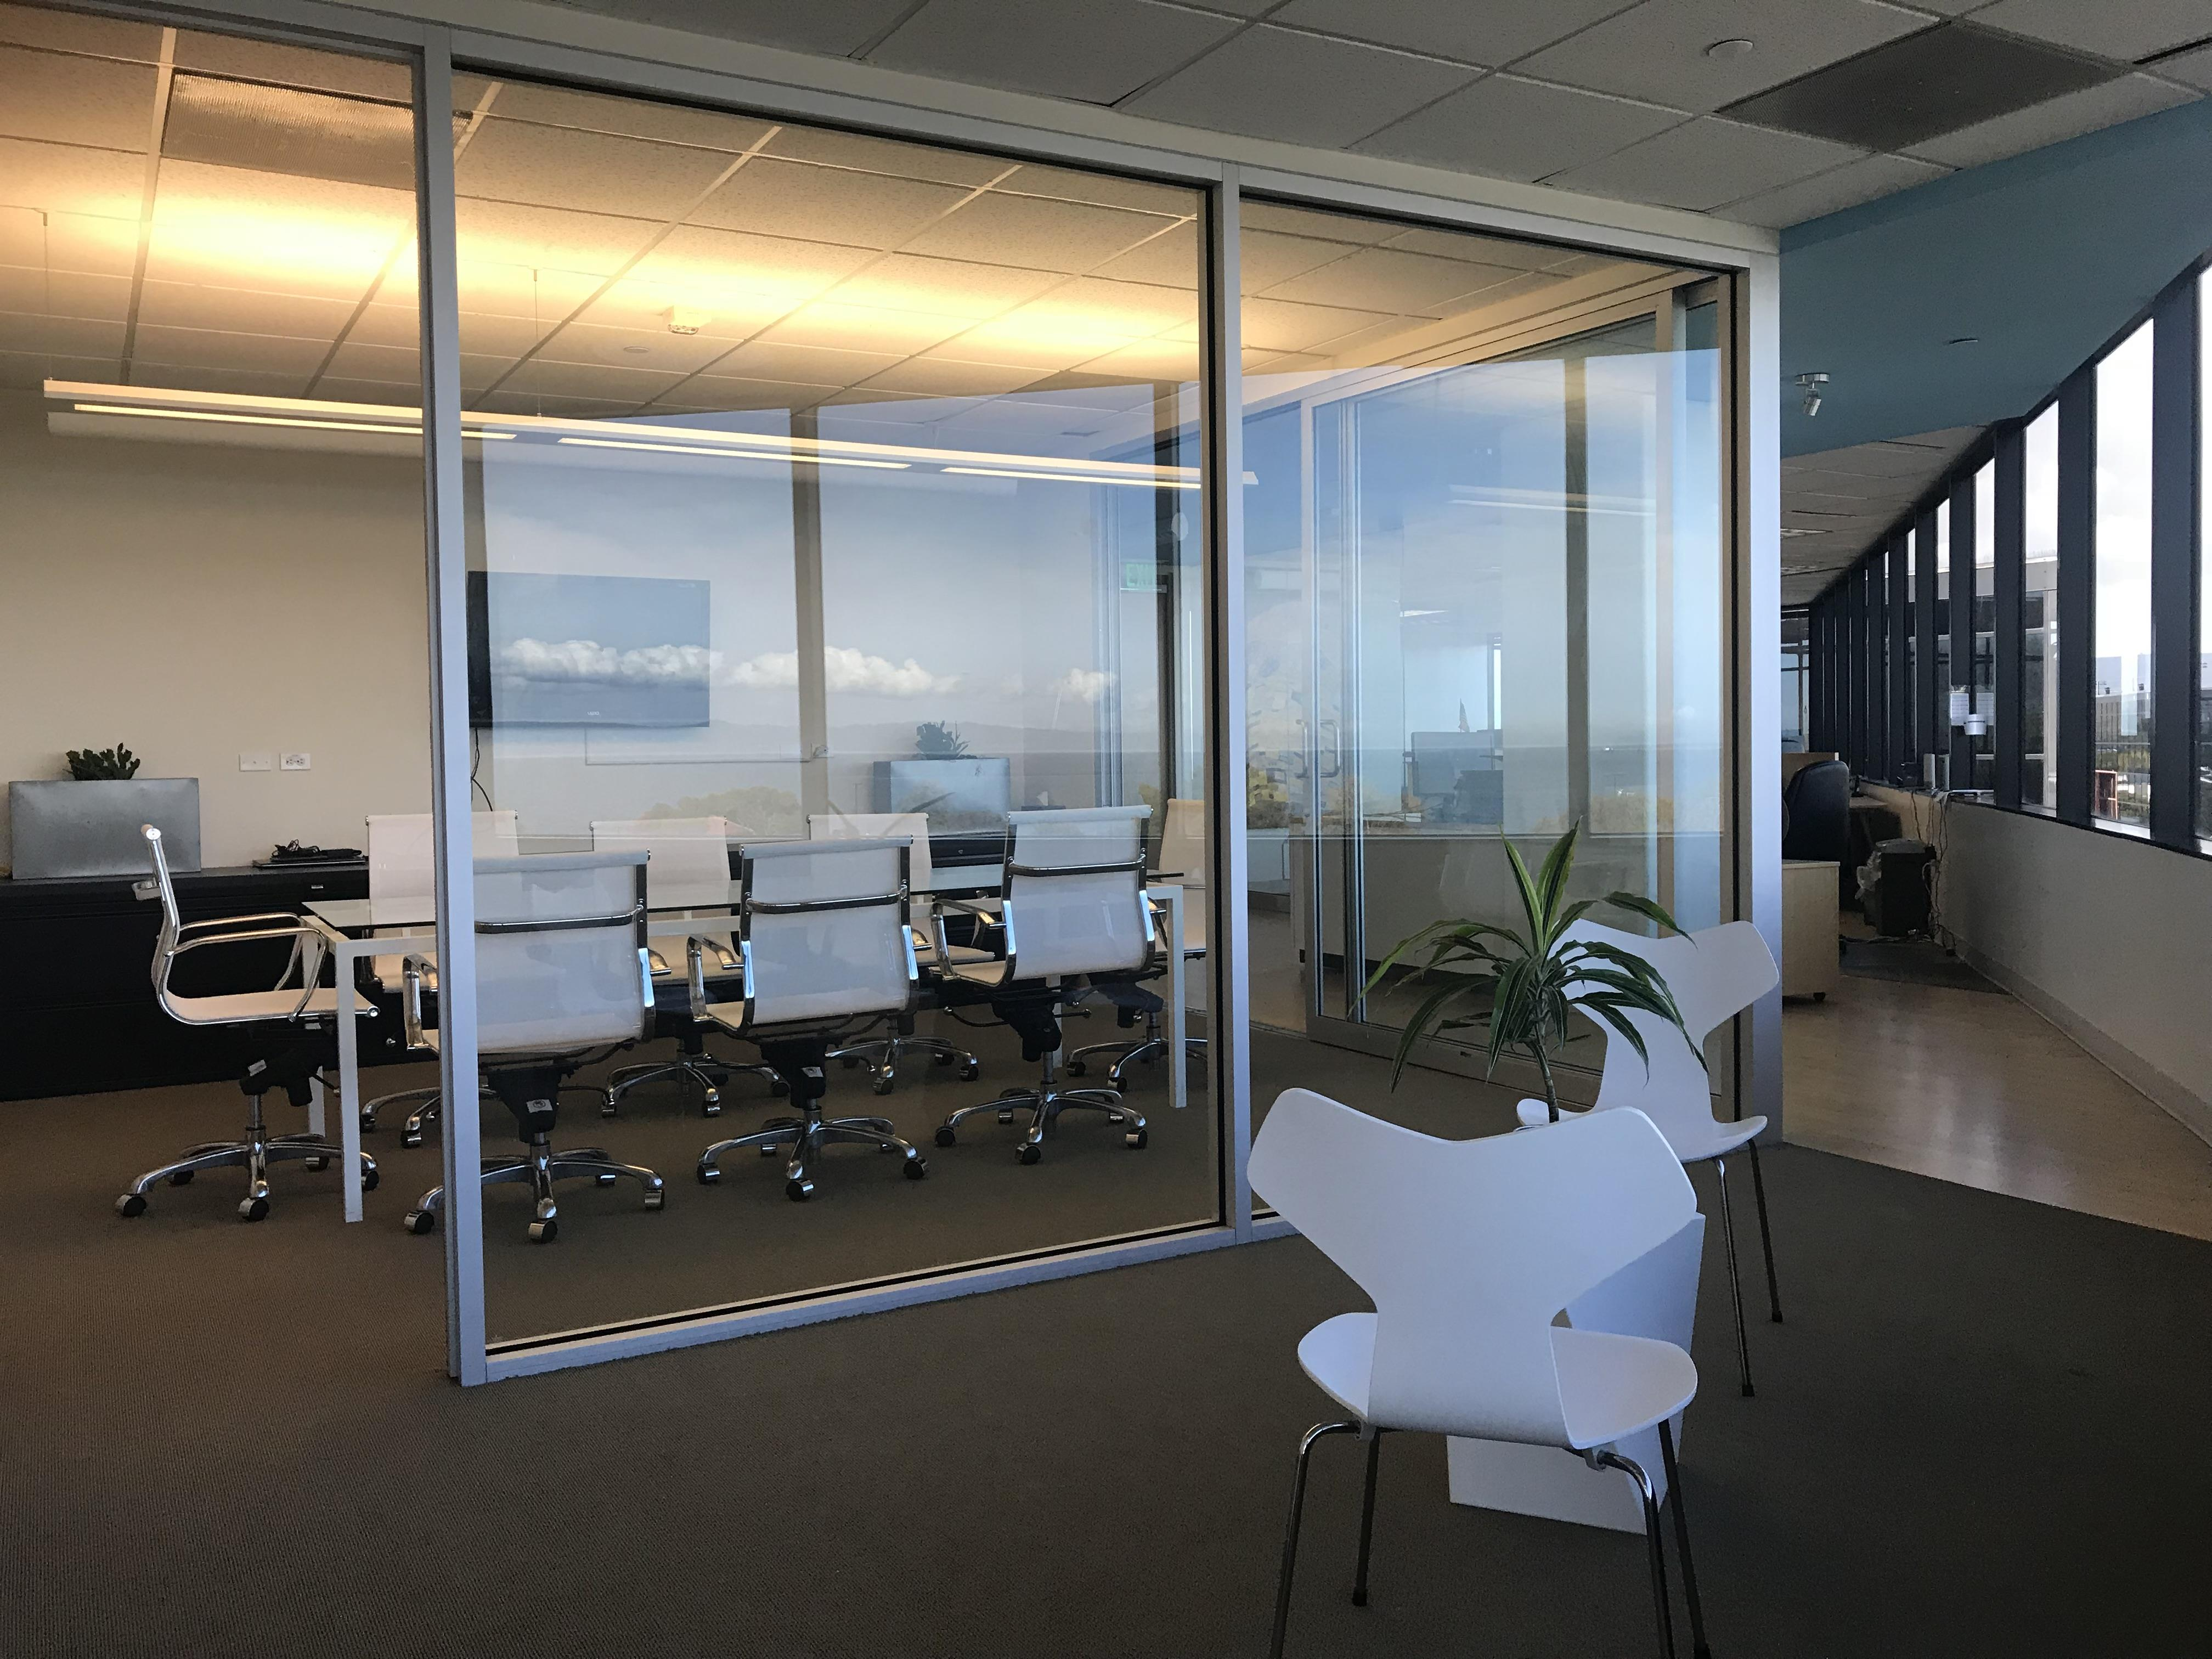 TUTORWORKS - Full Office - includes 2 private offices